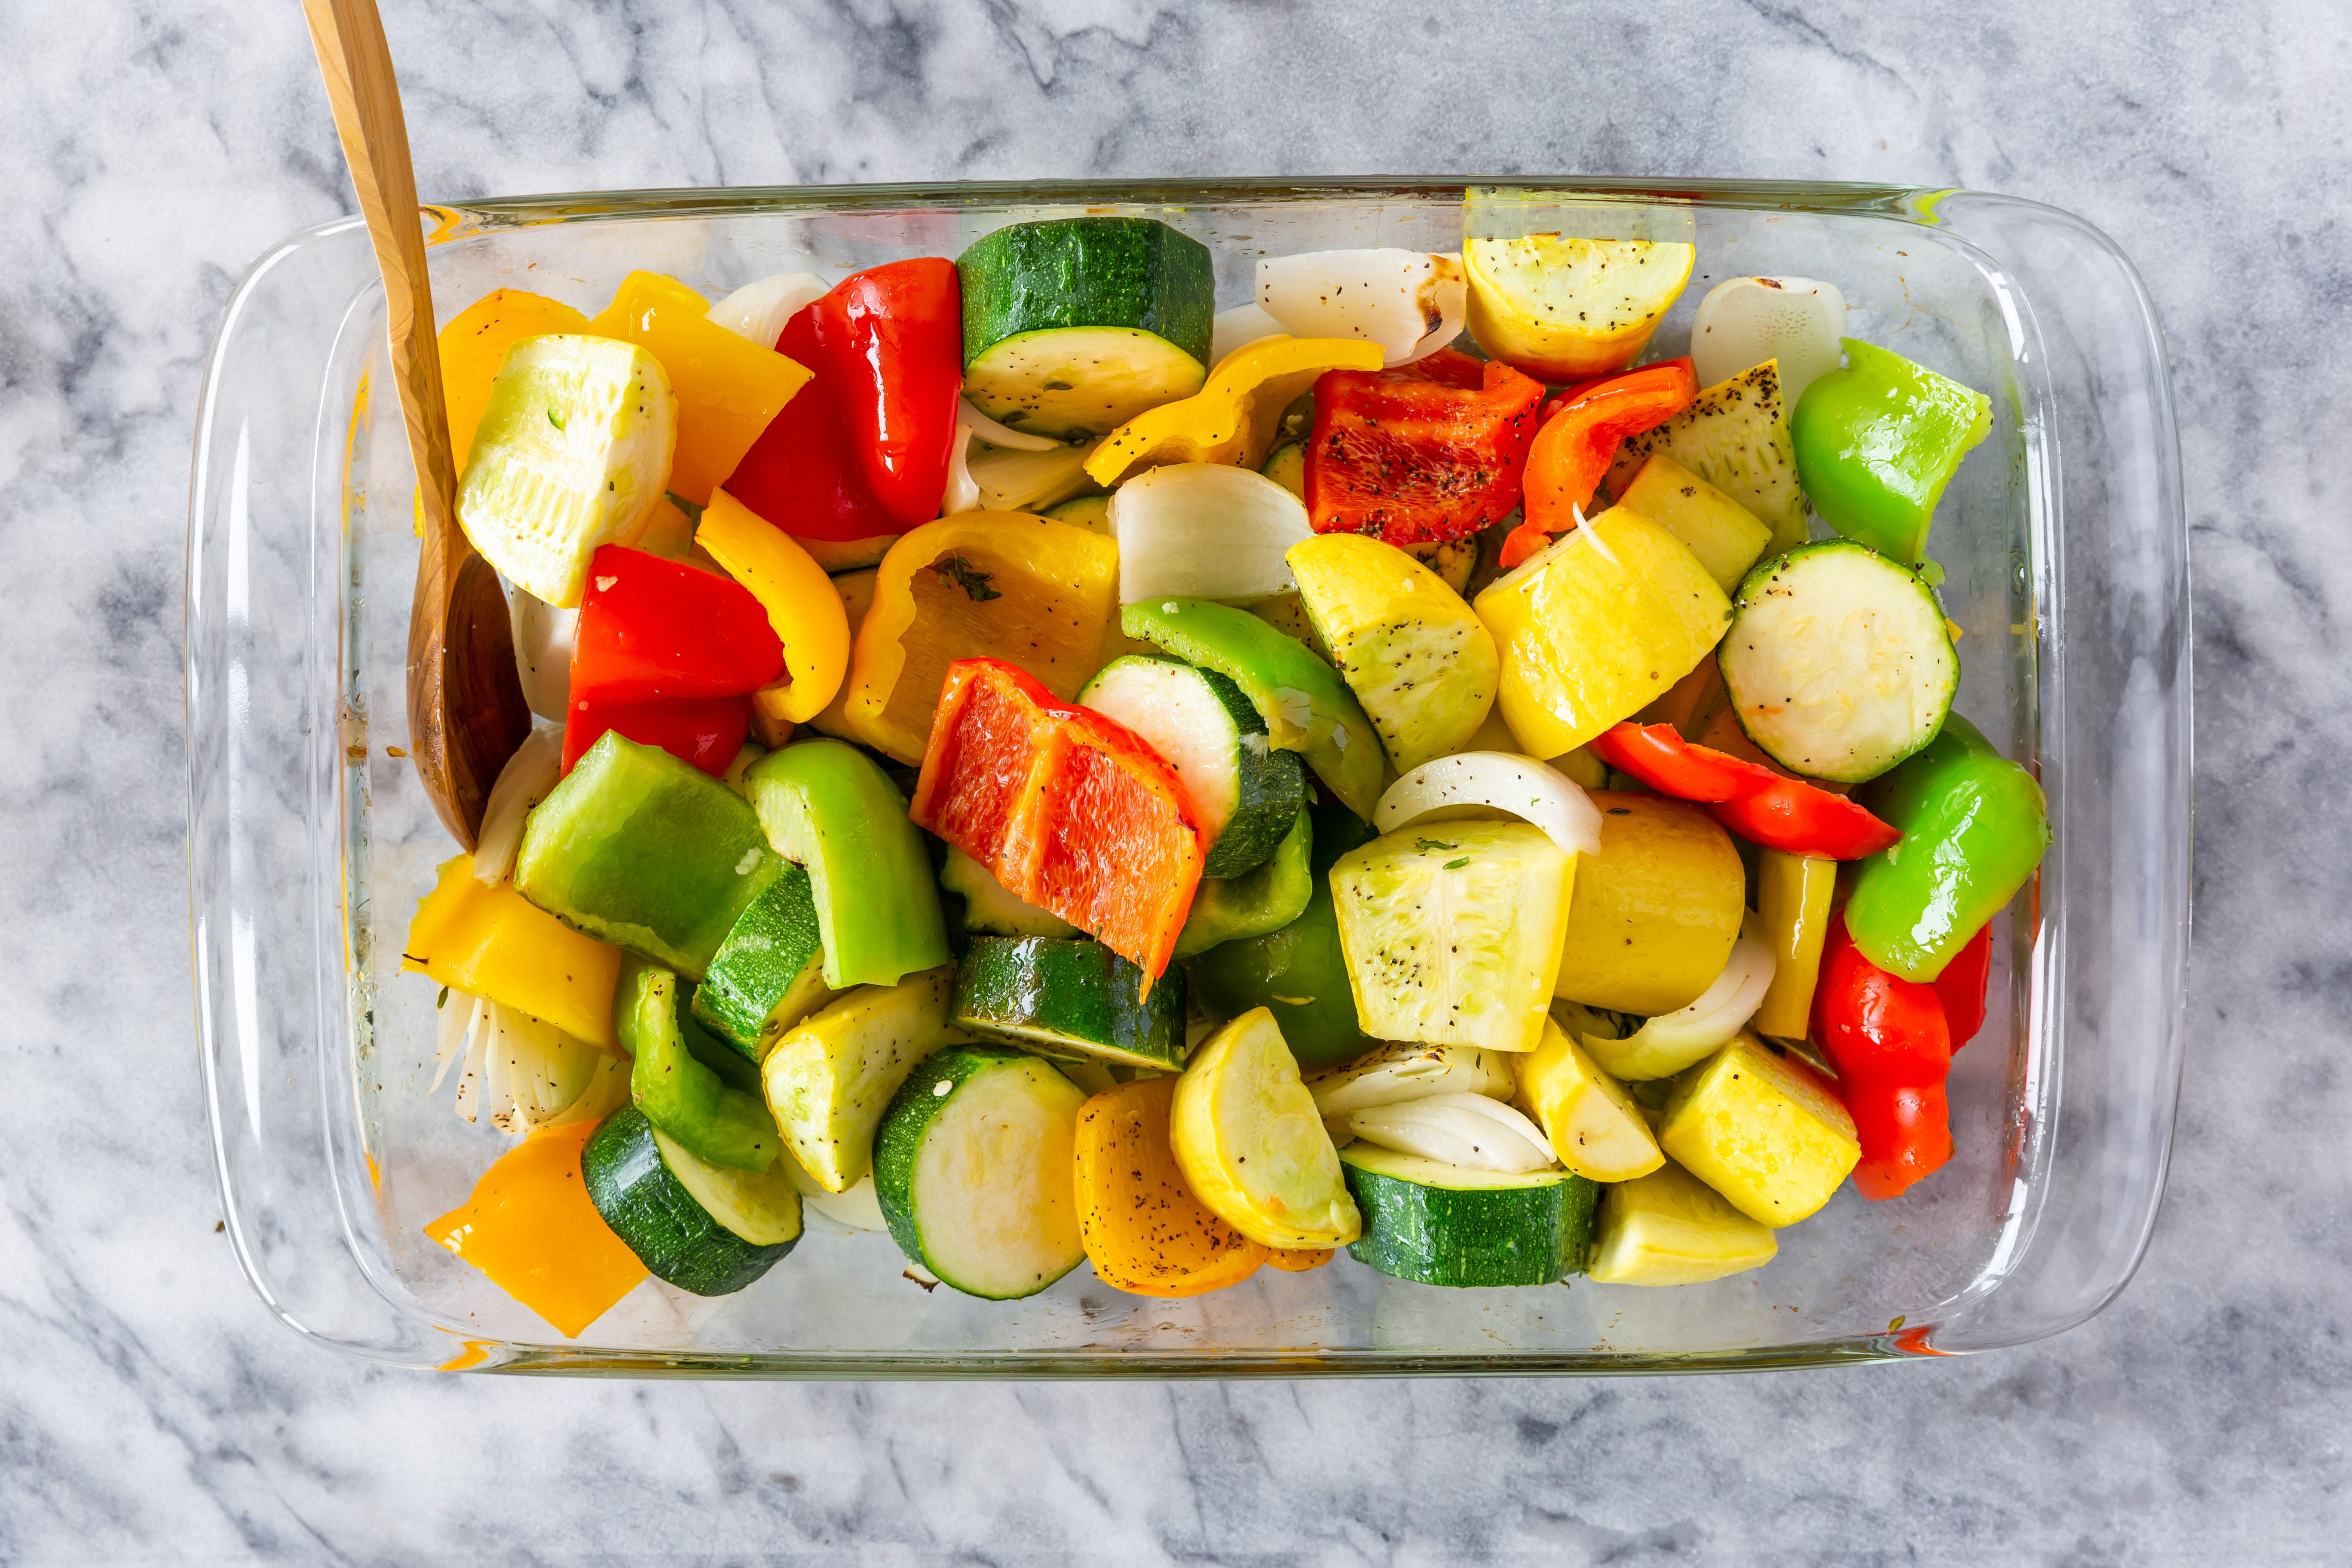 Wooden spoon tossing vegetables in baking dish